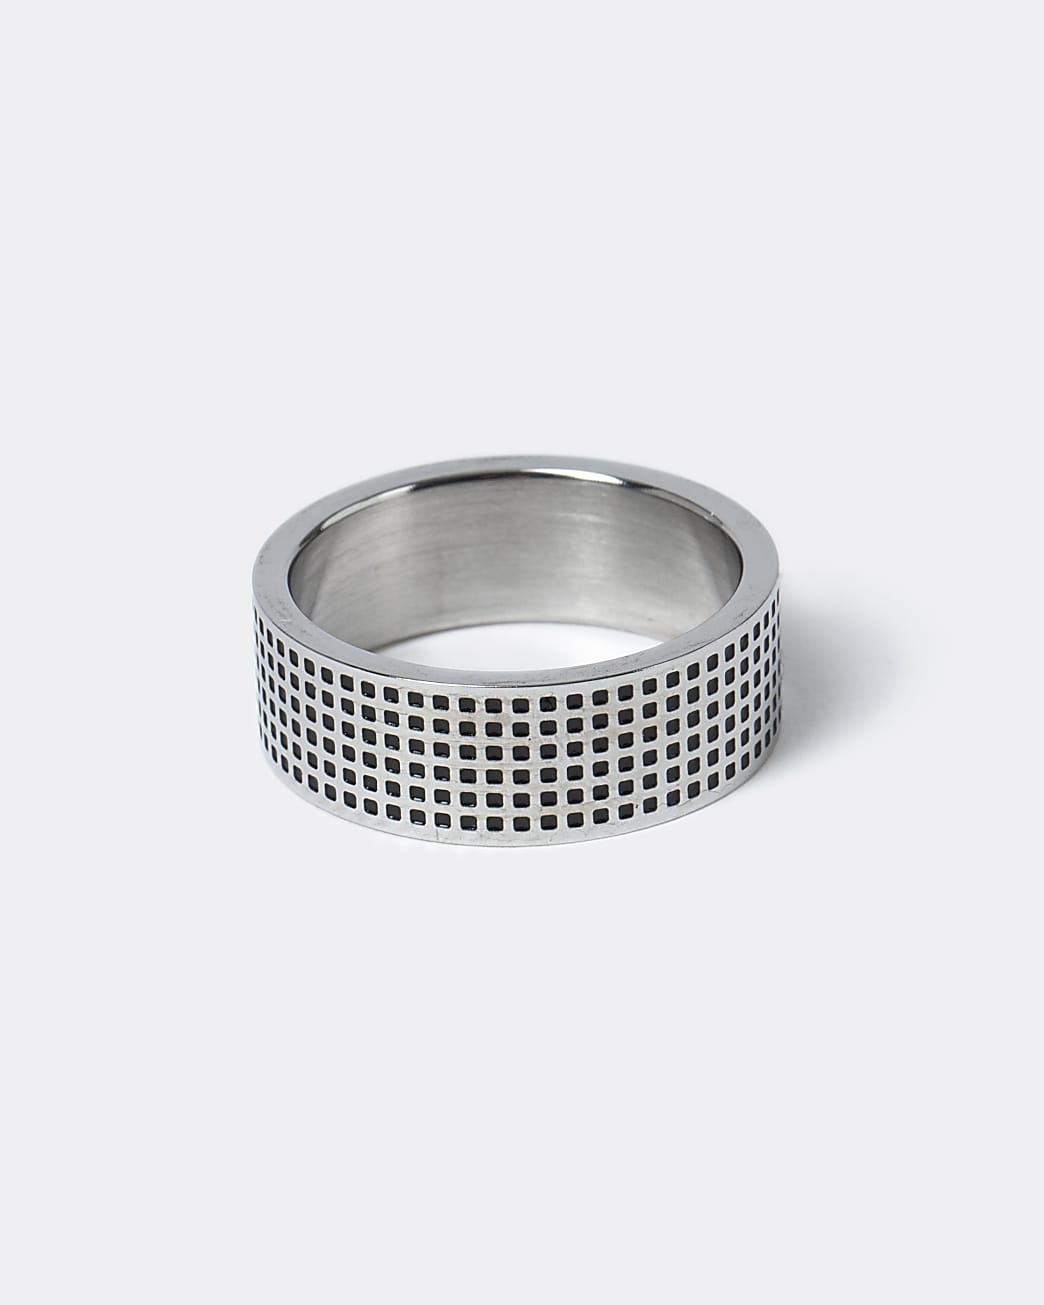 Silver stainless steel engraved band ring